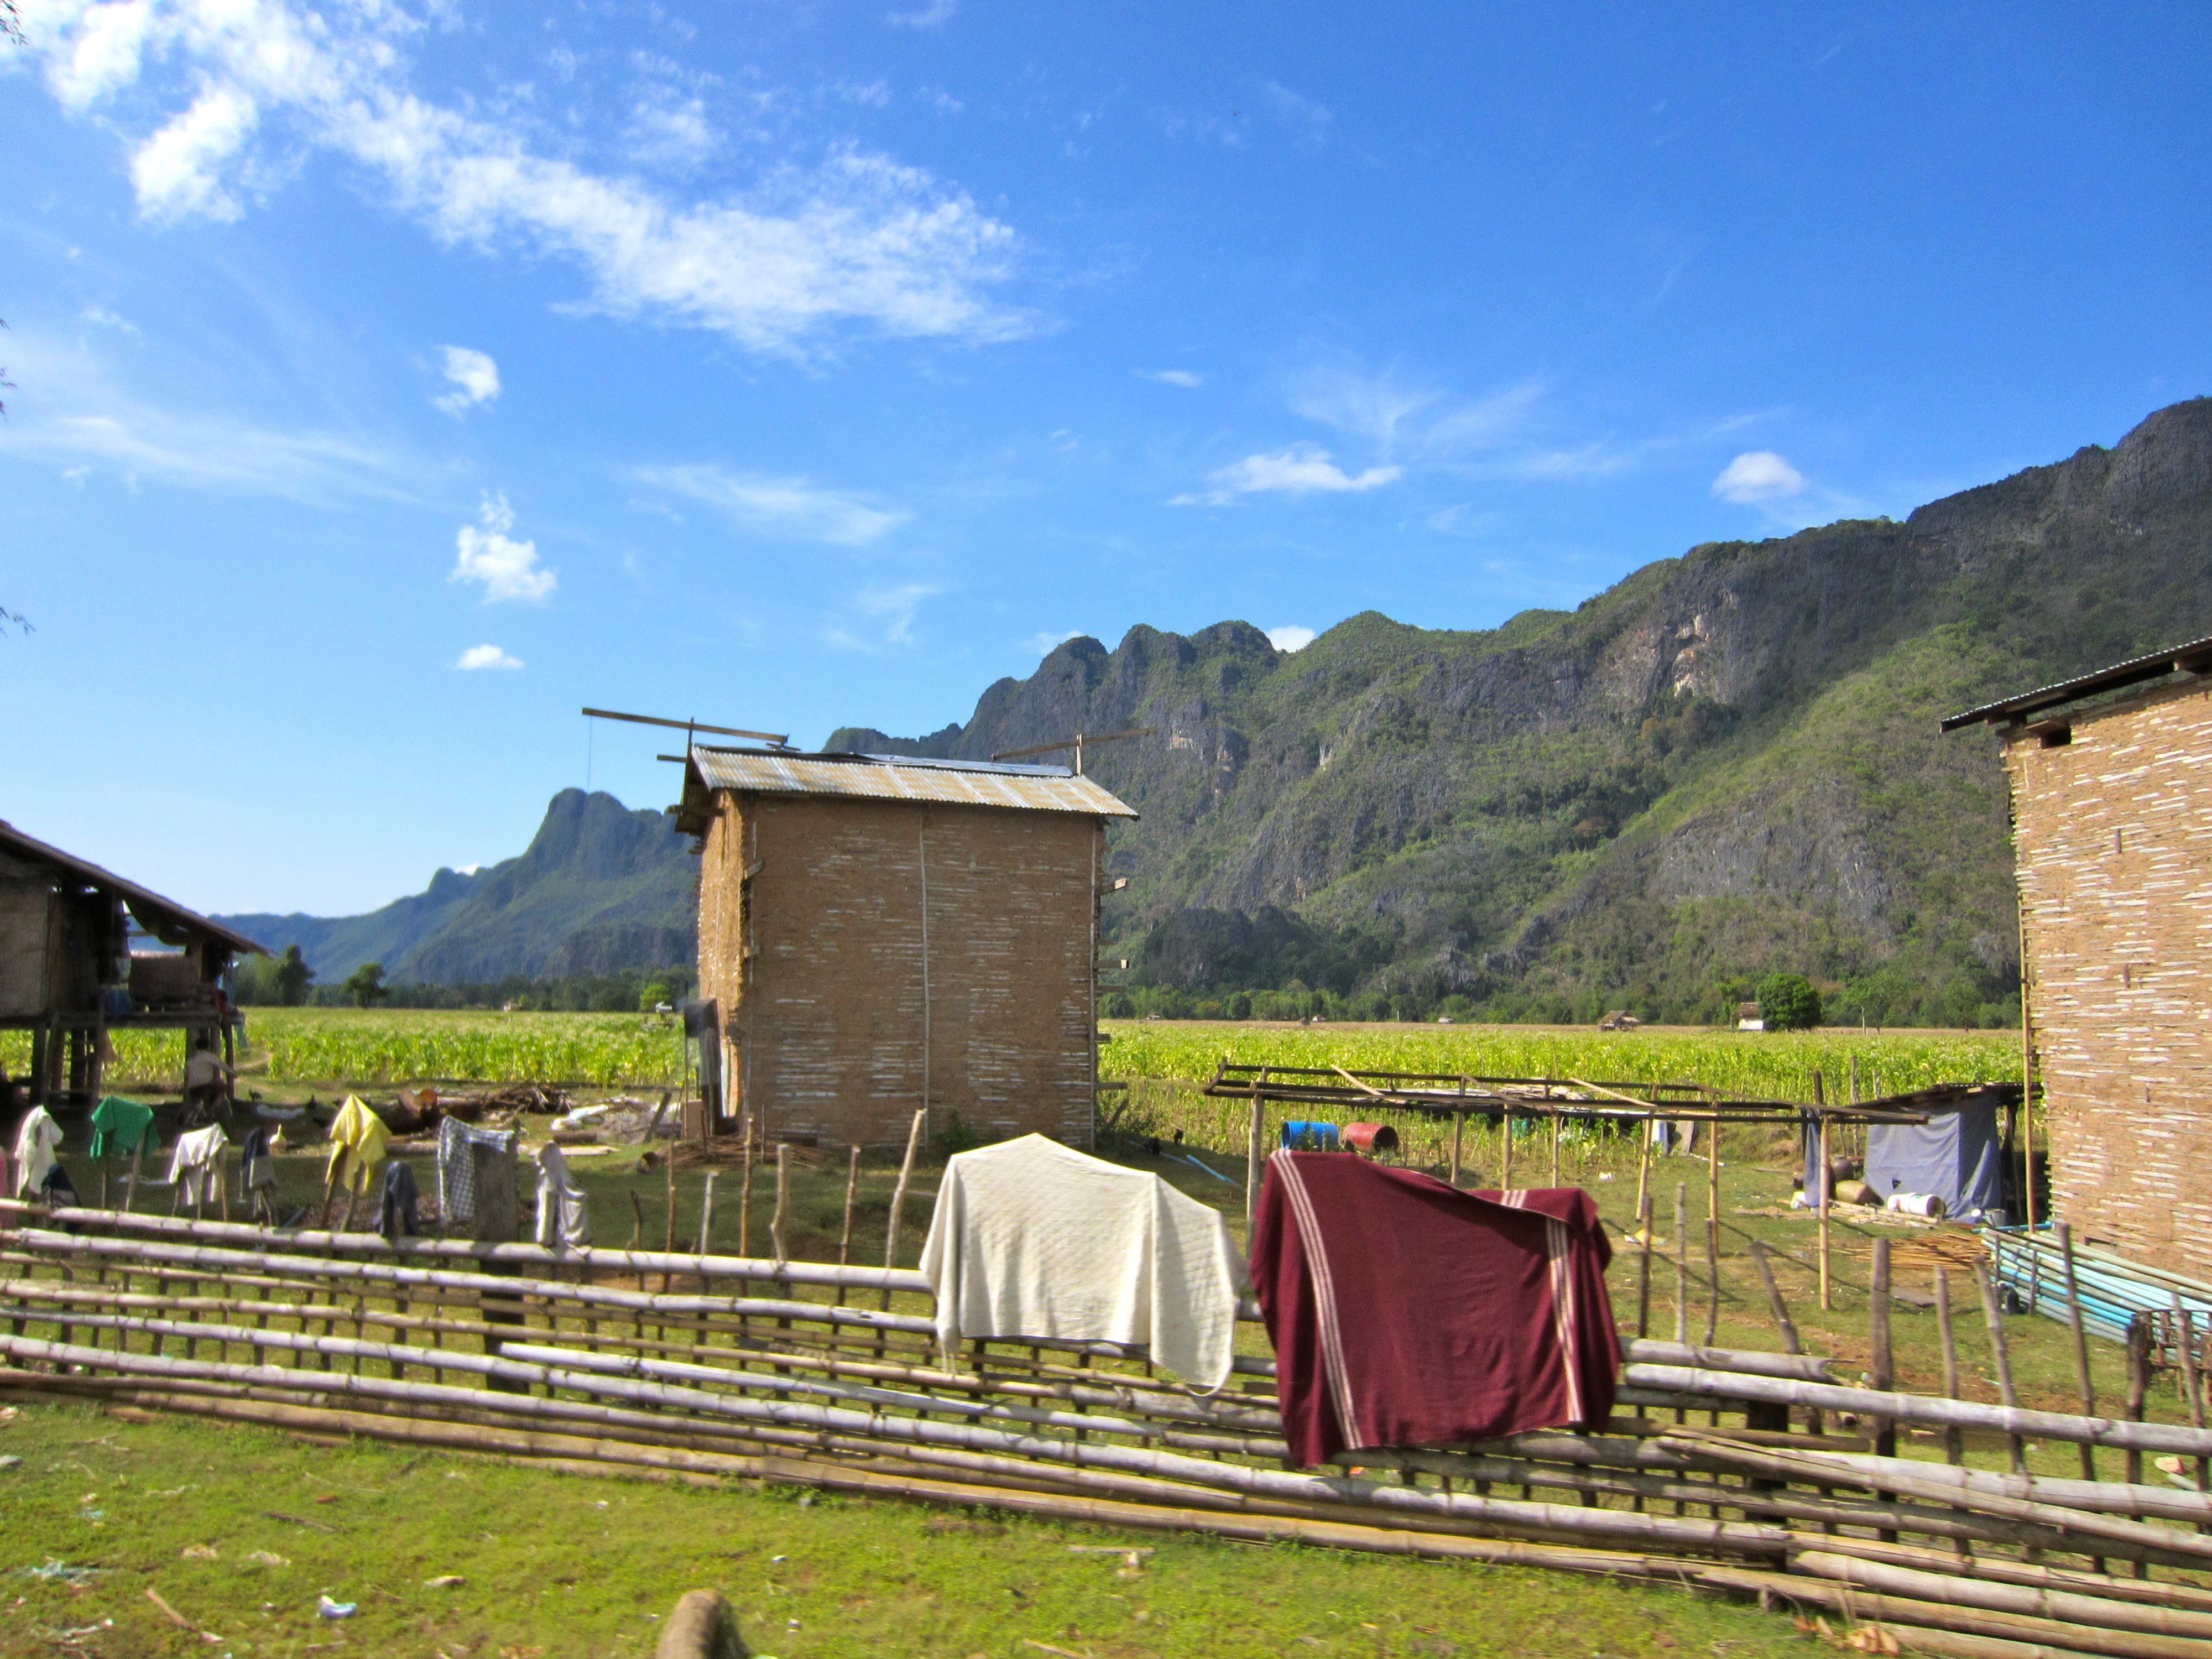 Laundry in front of mountain